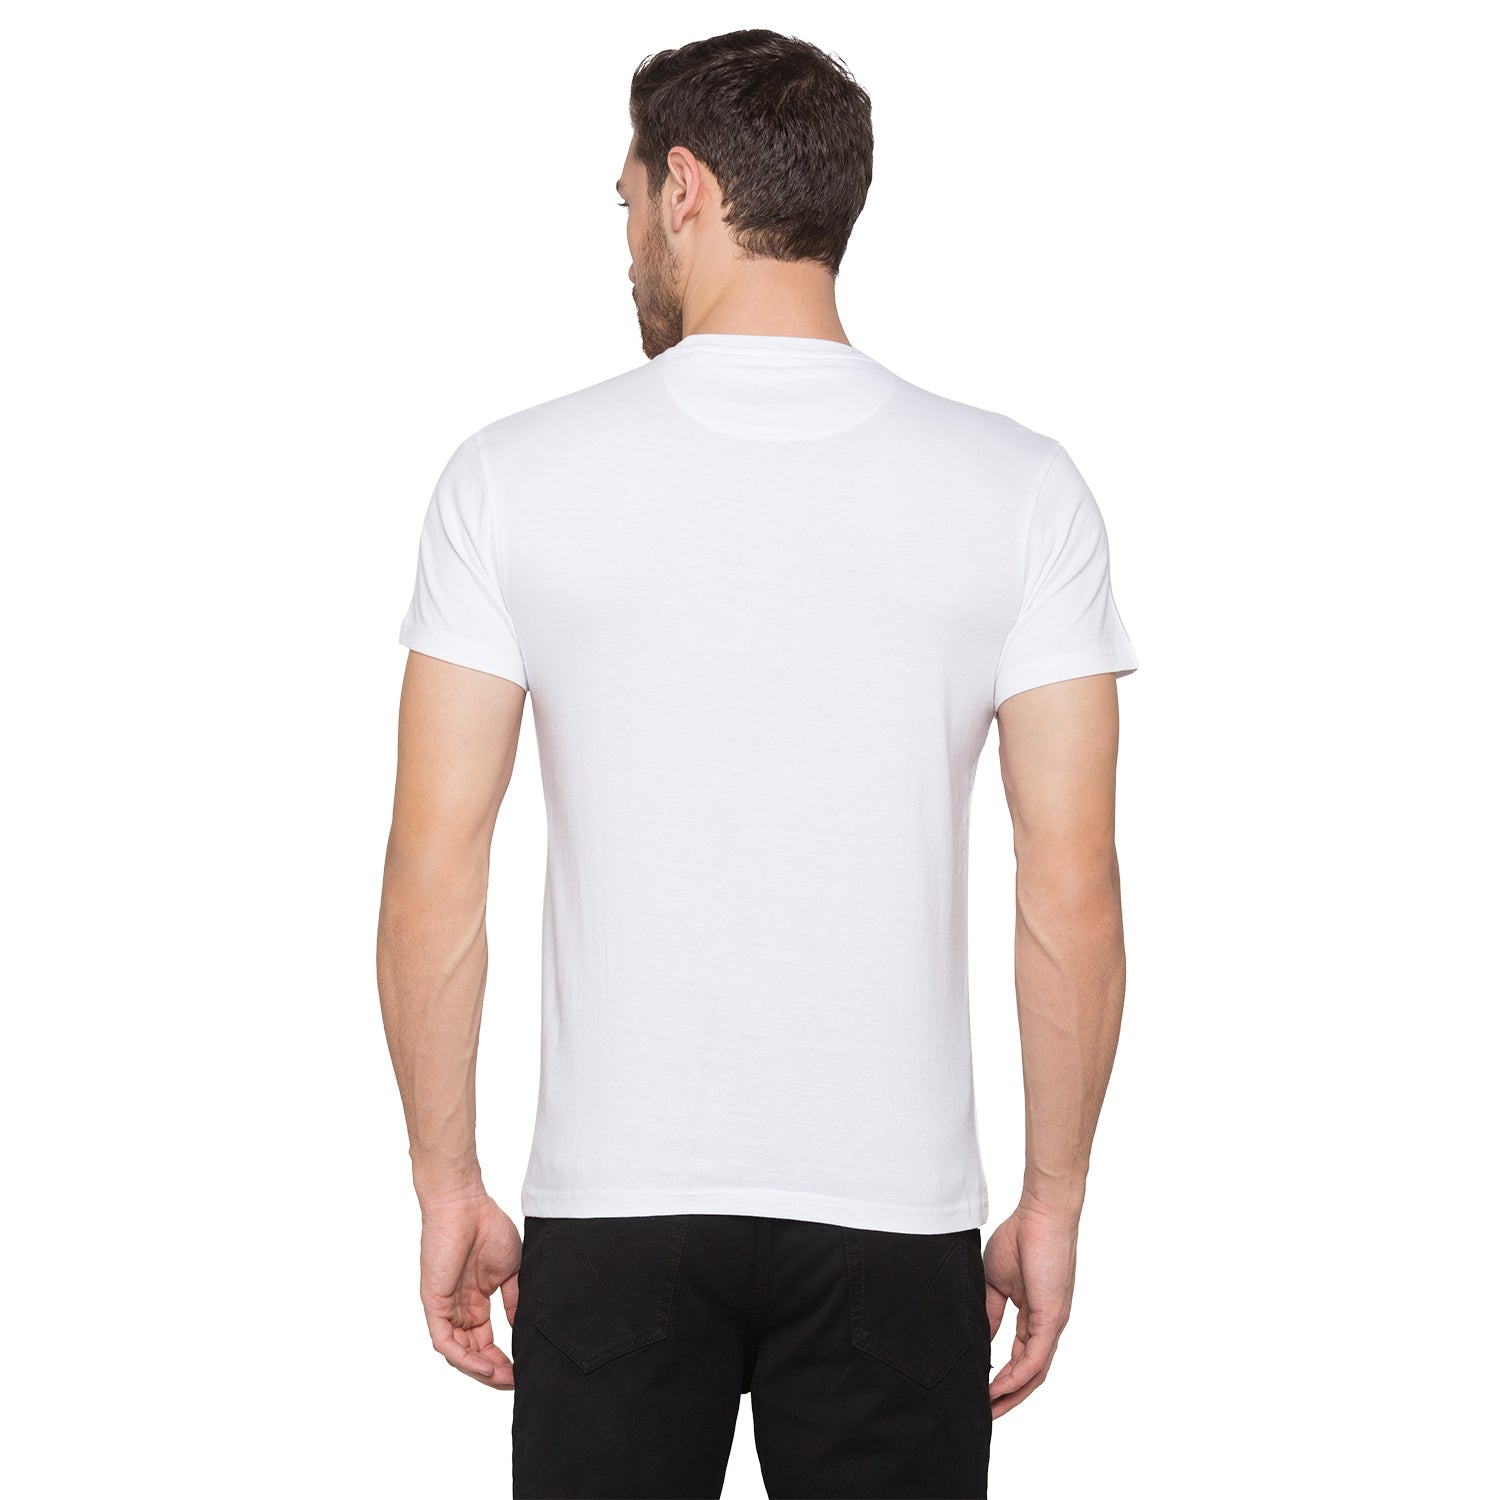 Globus White Graphic T-Shirt3